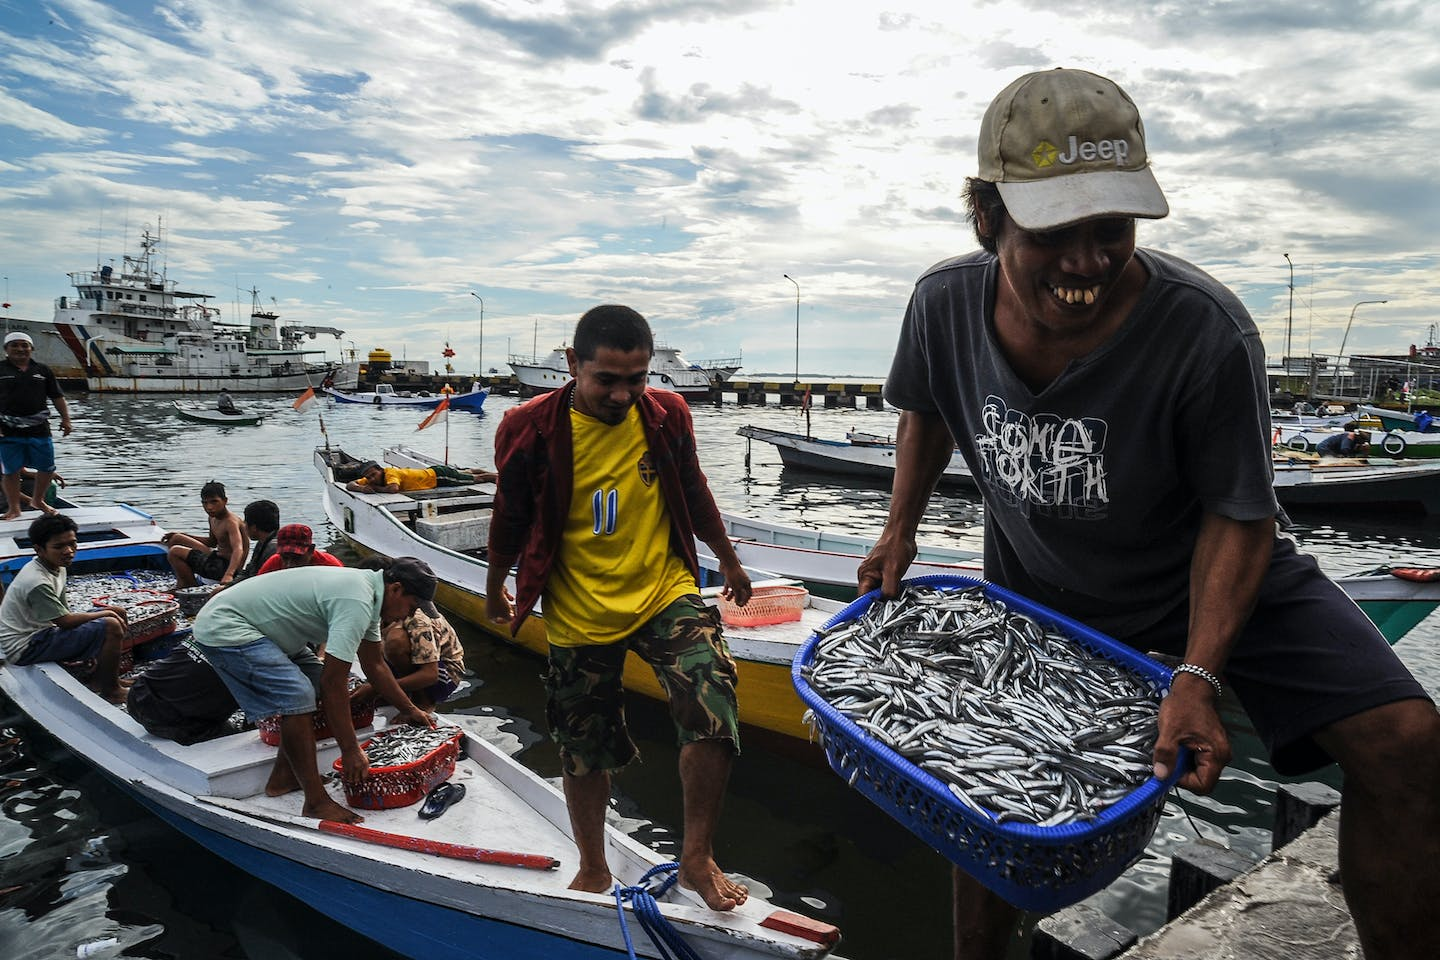 Fishermen unloading buckets of fish from their boats in Makassar, South Sulawesi, Indonesia